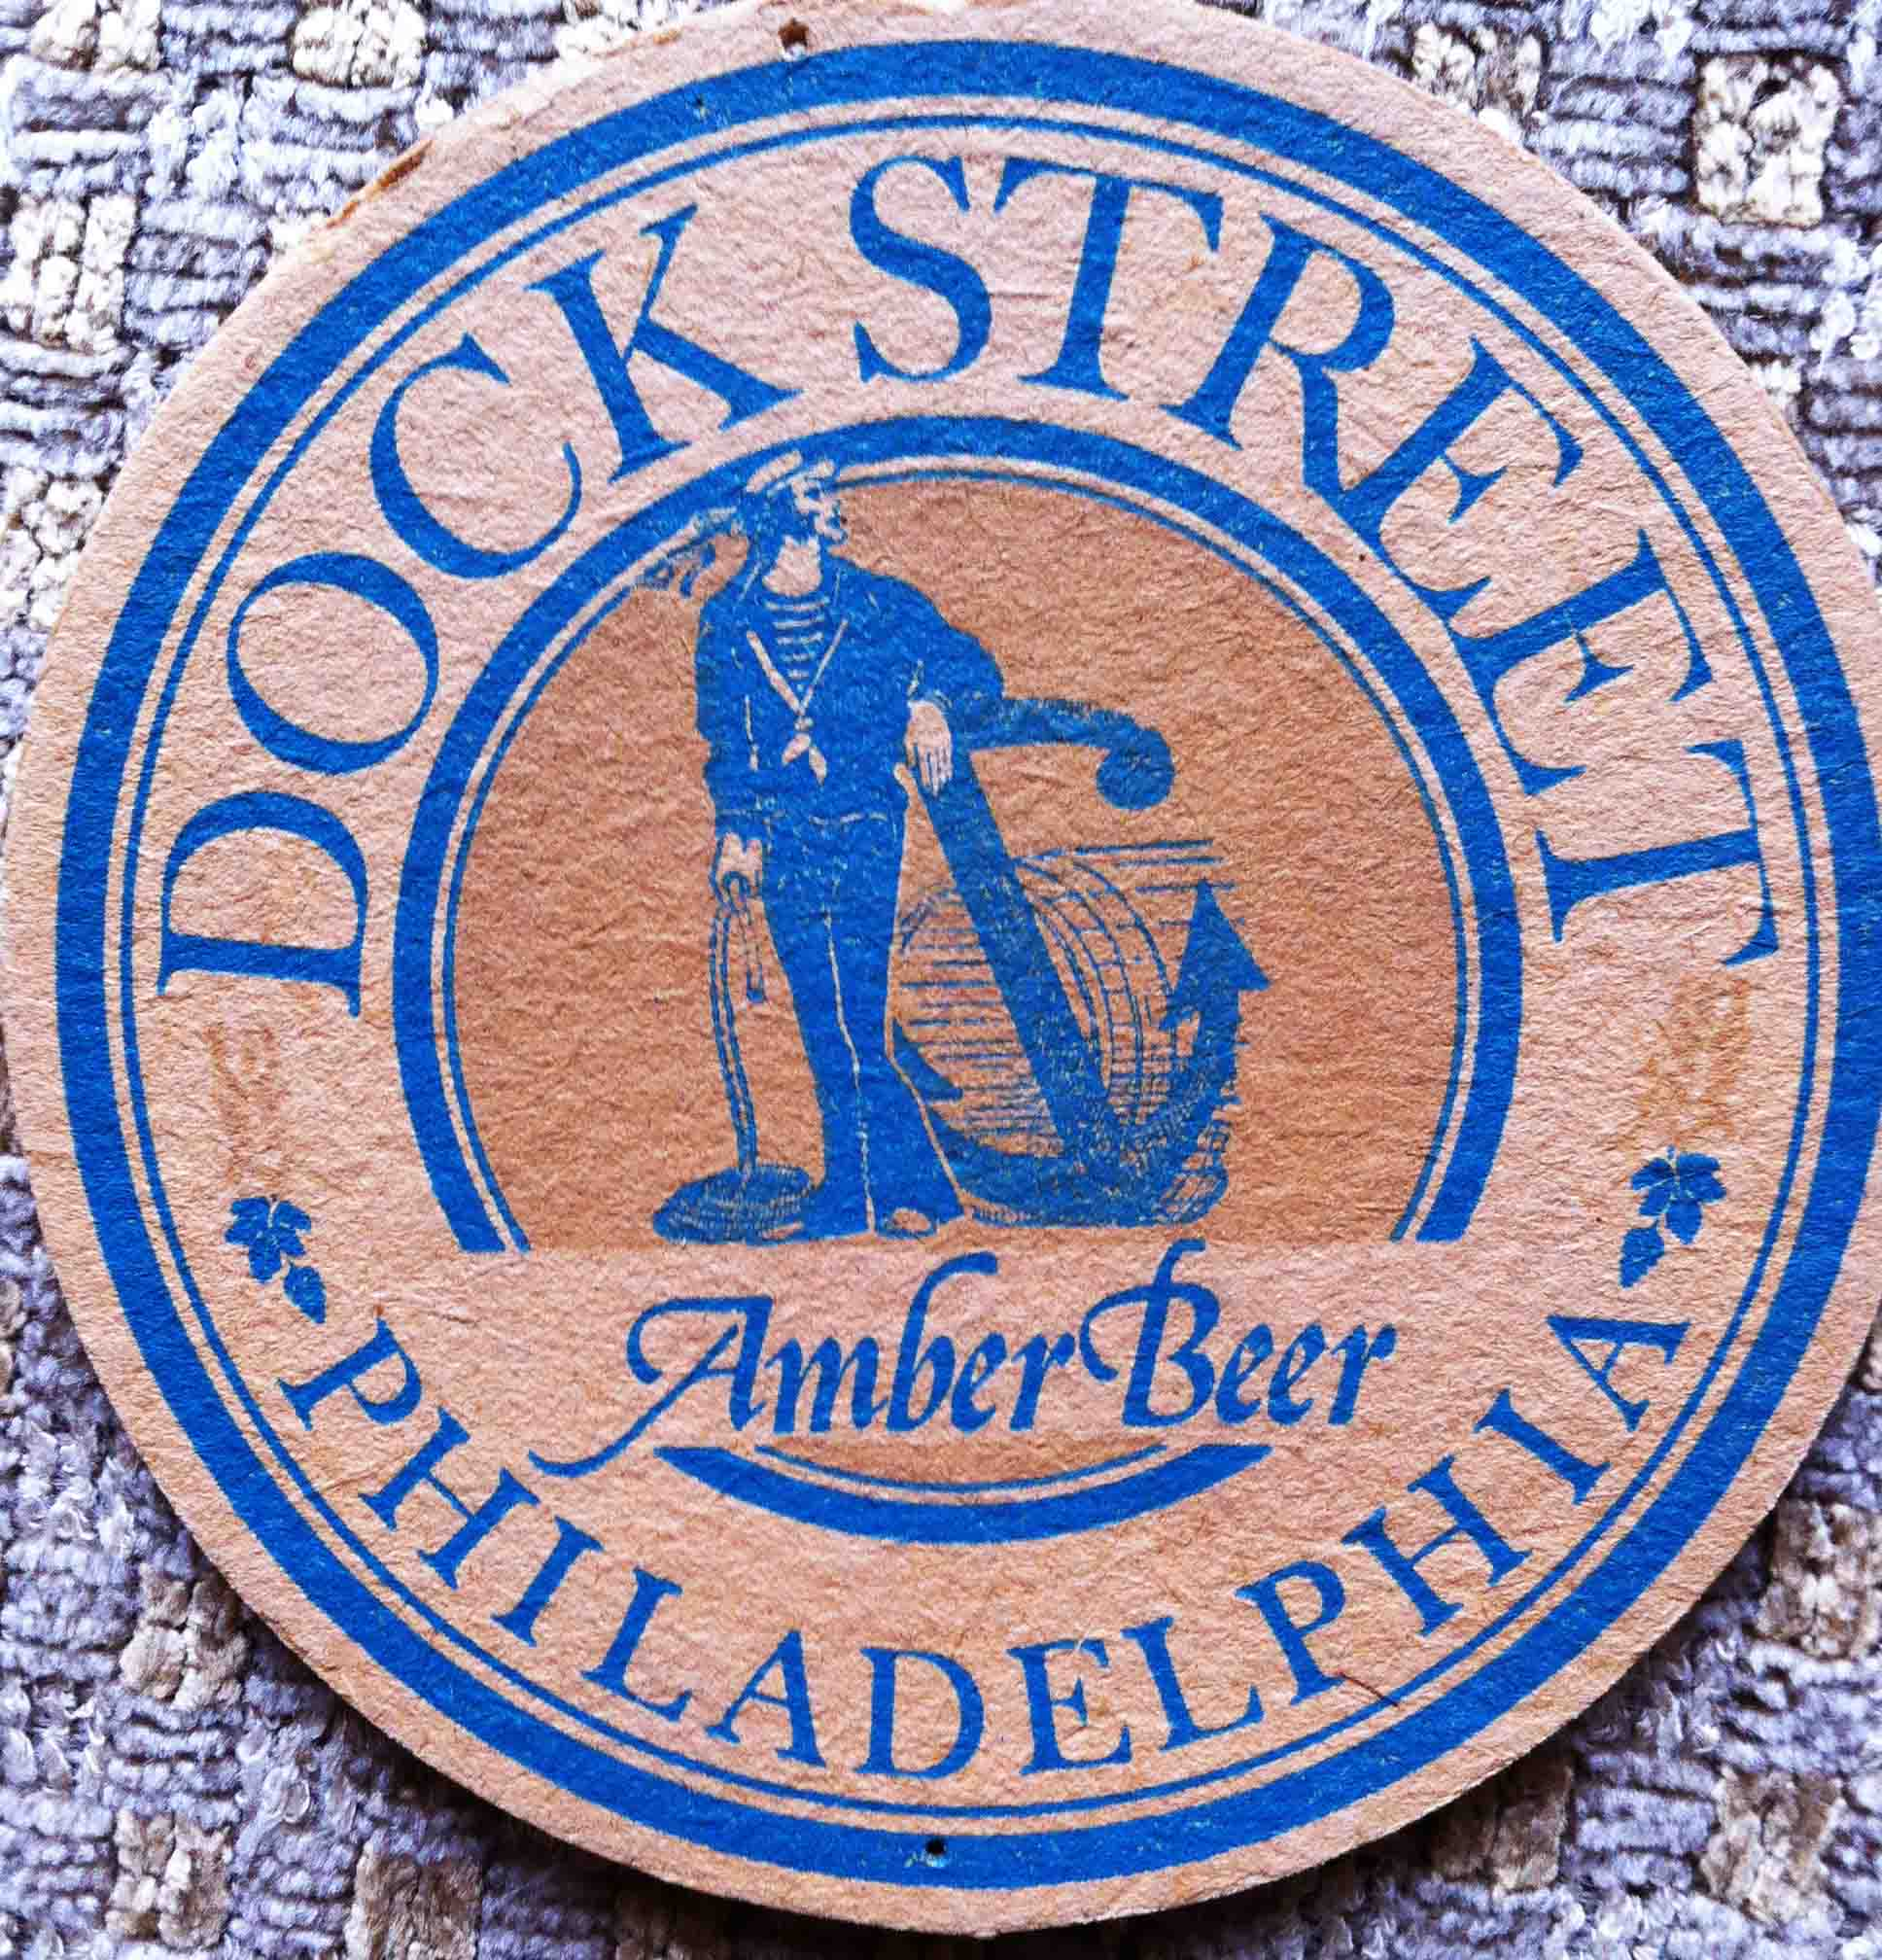 4. (Old) Dock Street Brew Pub, Philadelphia PA 1991